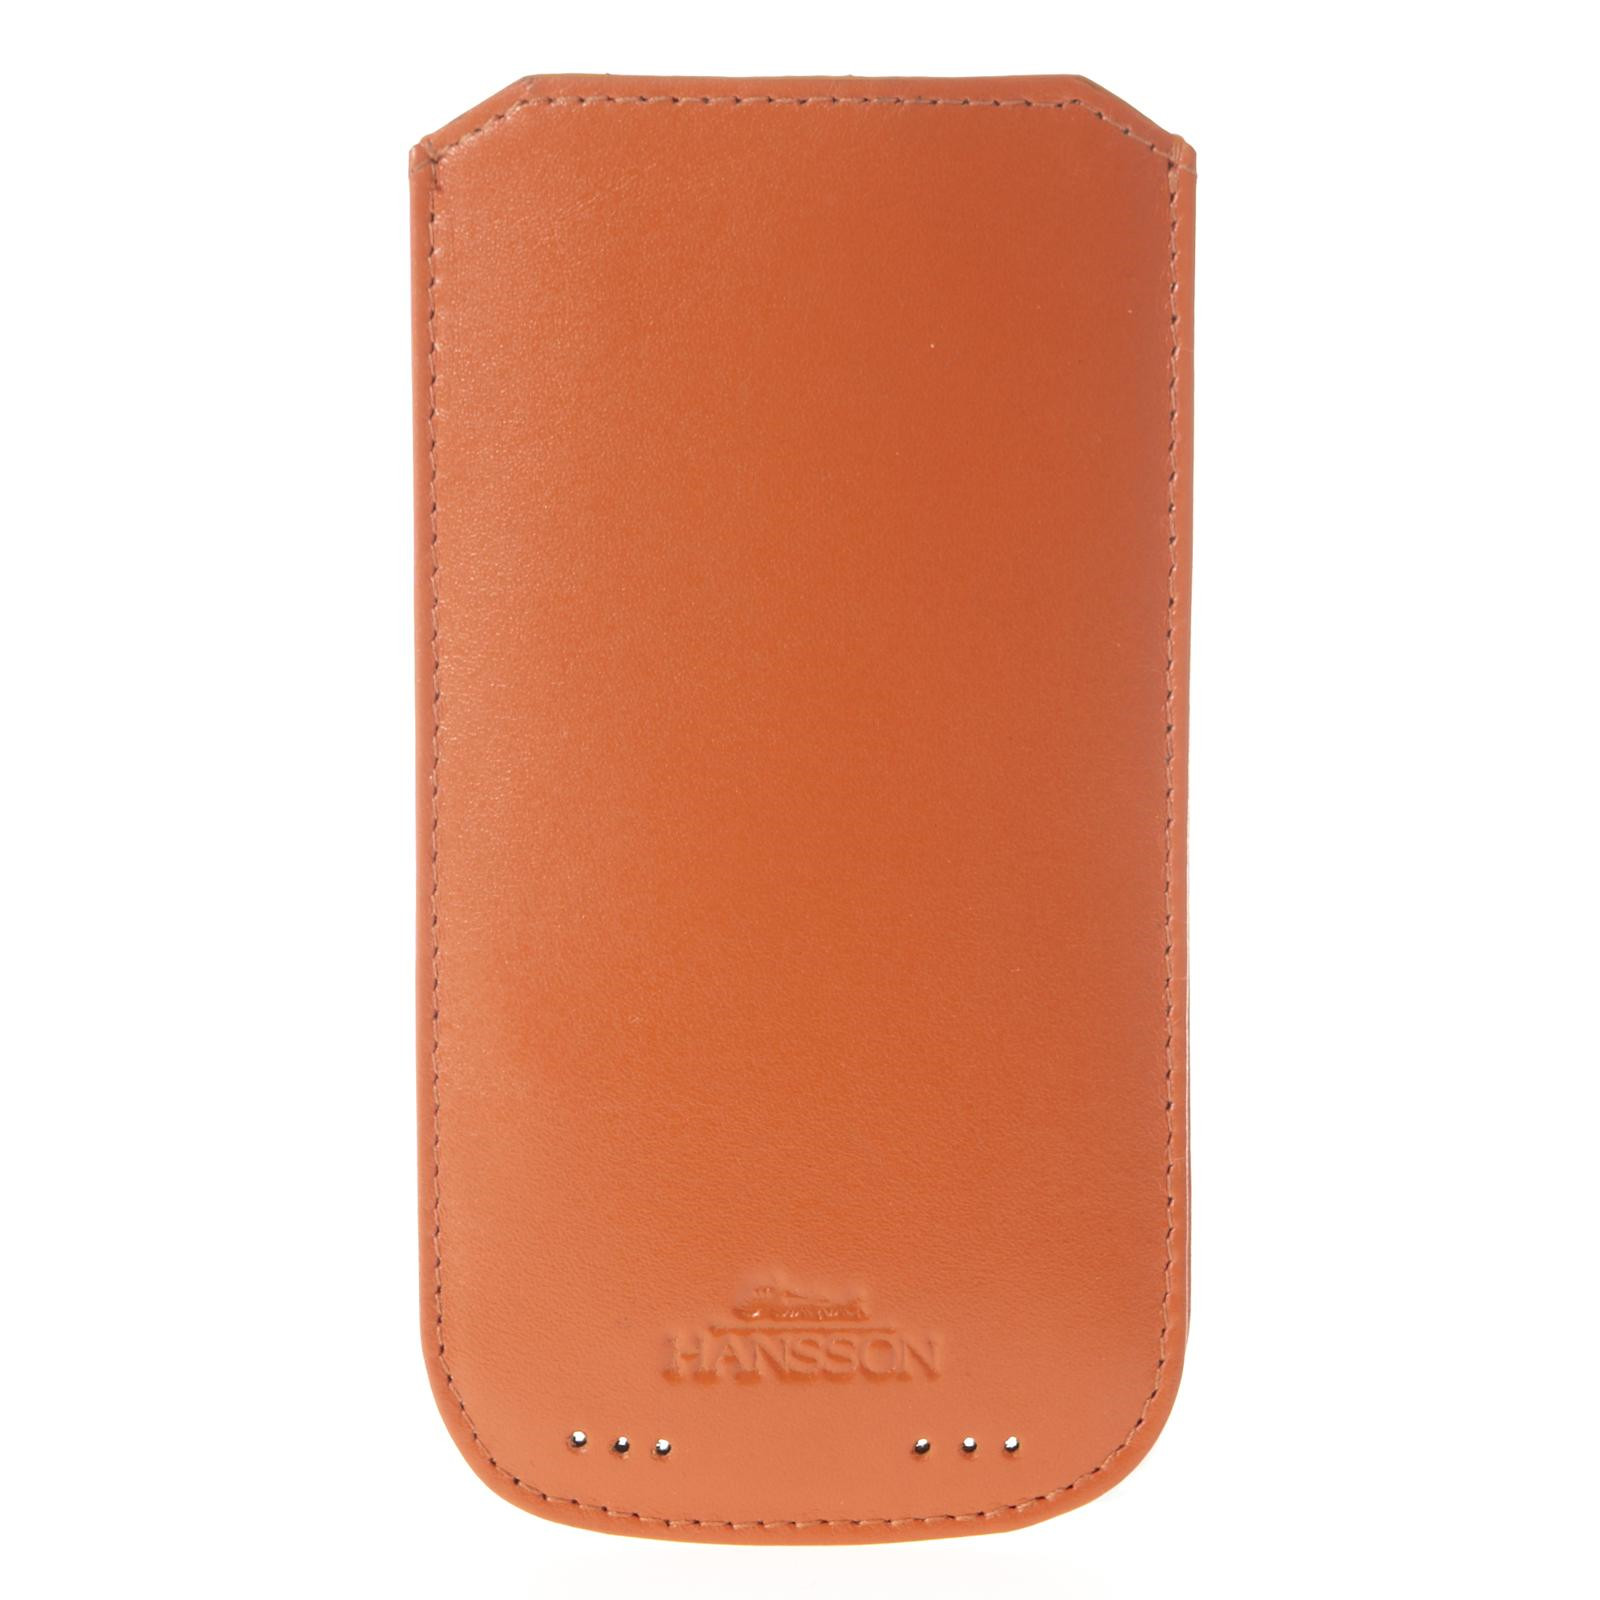 Hansson iPhone cover i skind